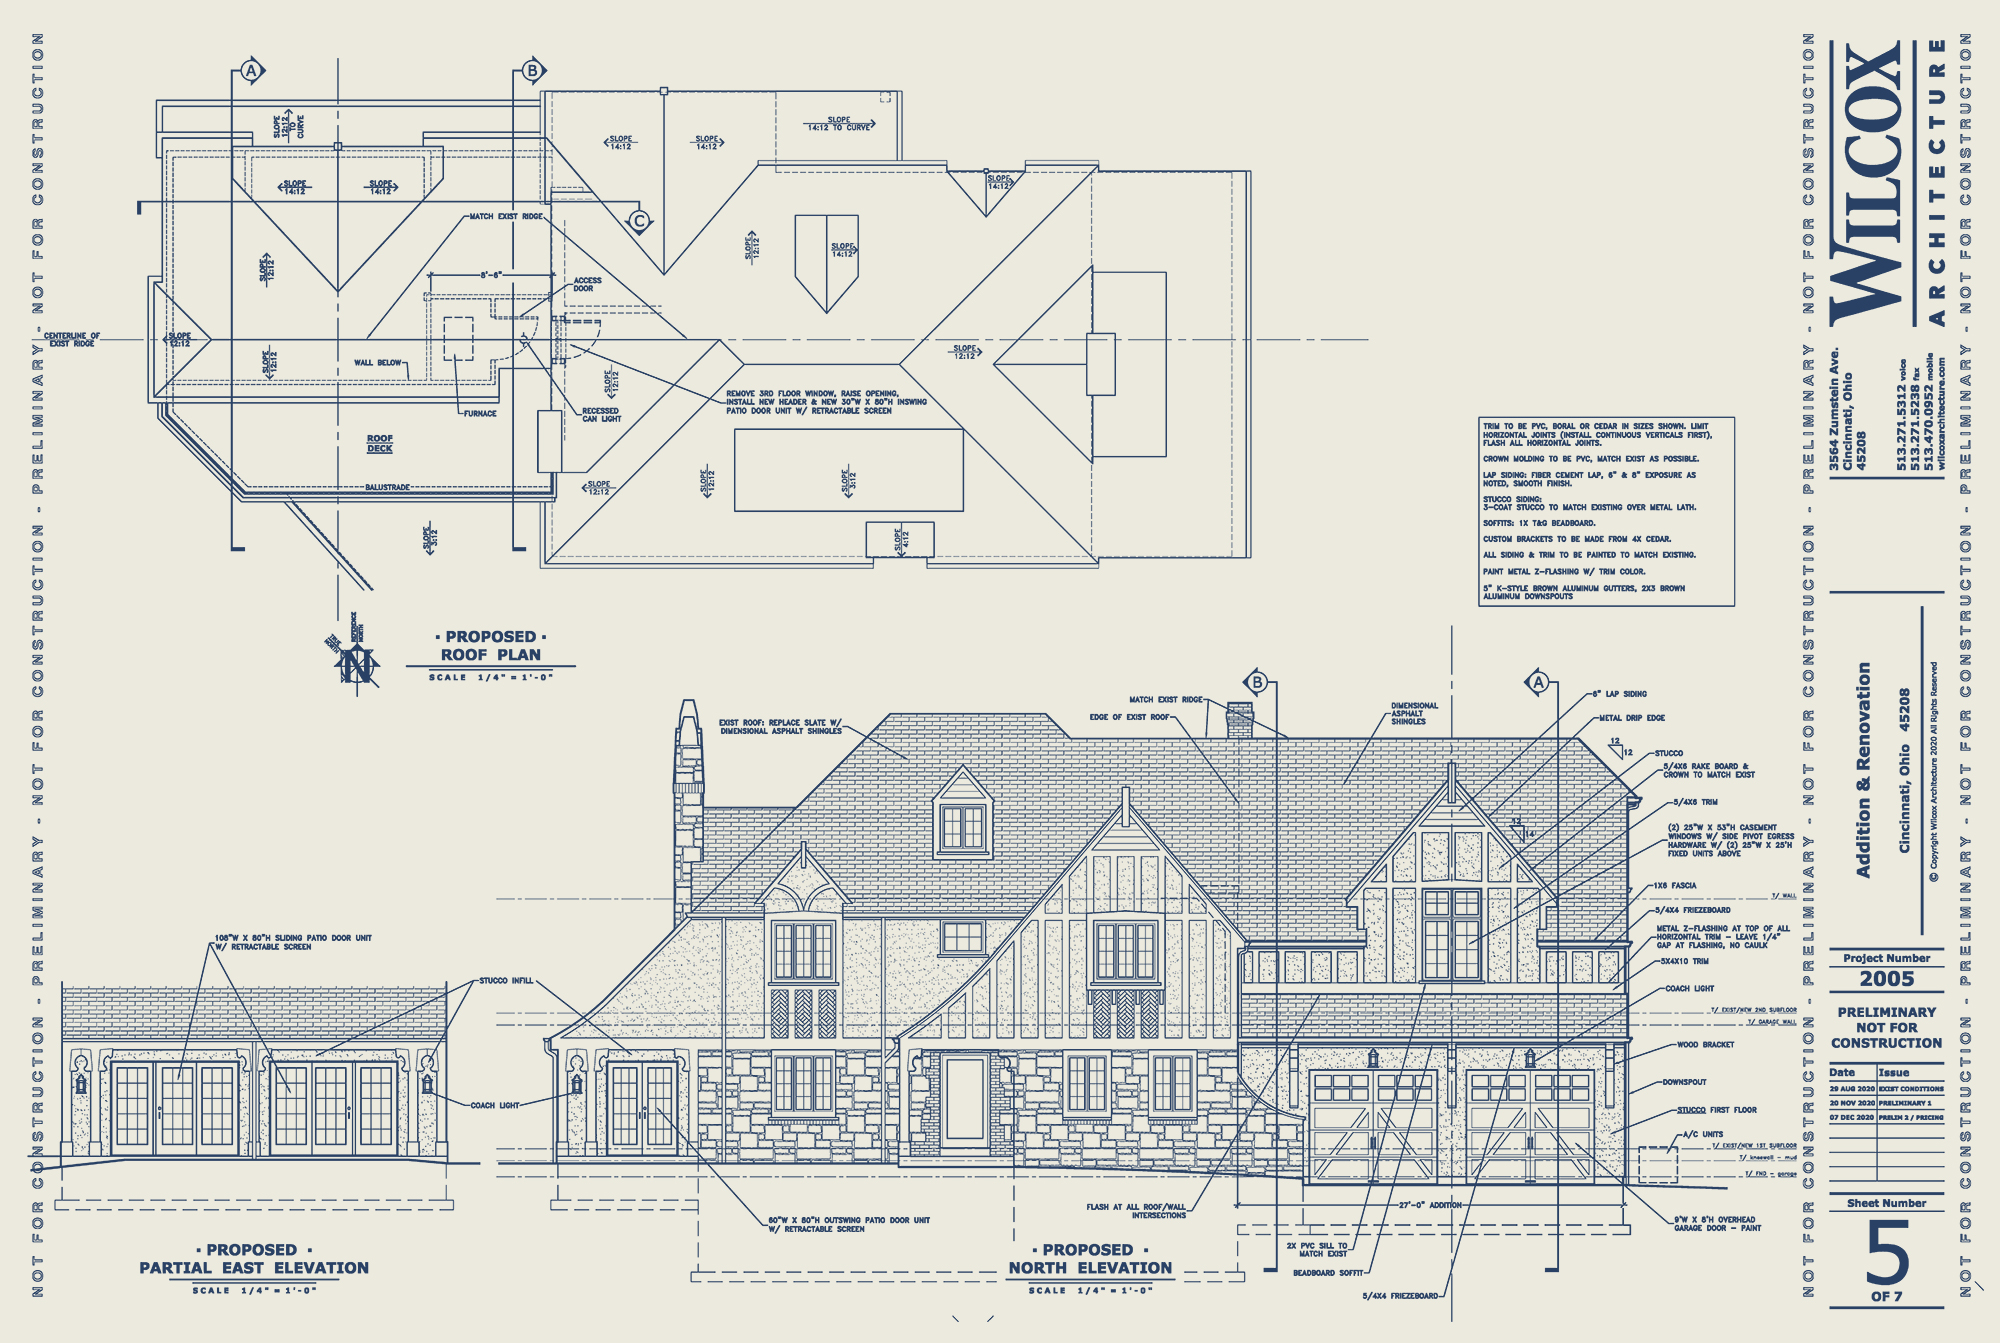 Design Development drawing Wilcox Architecture, Residential Architecture